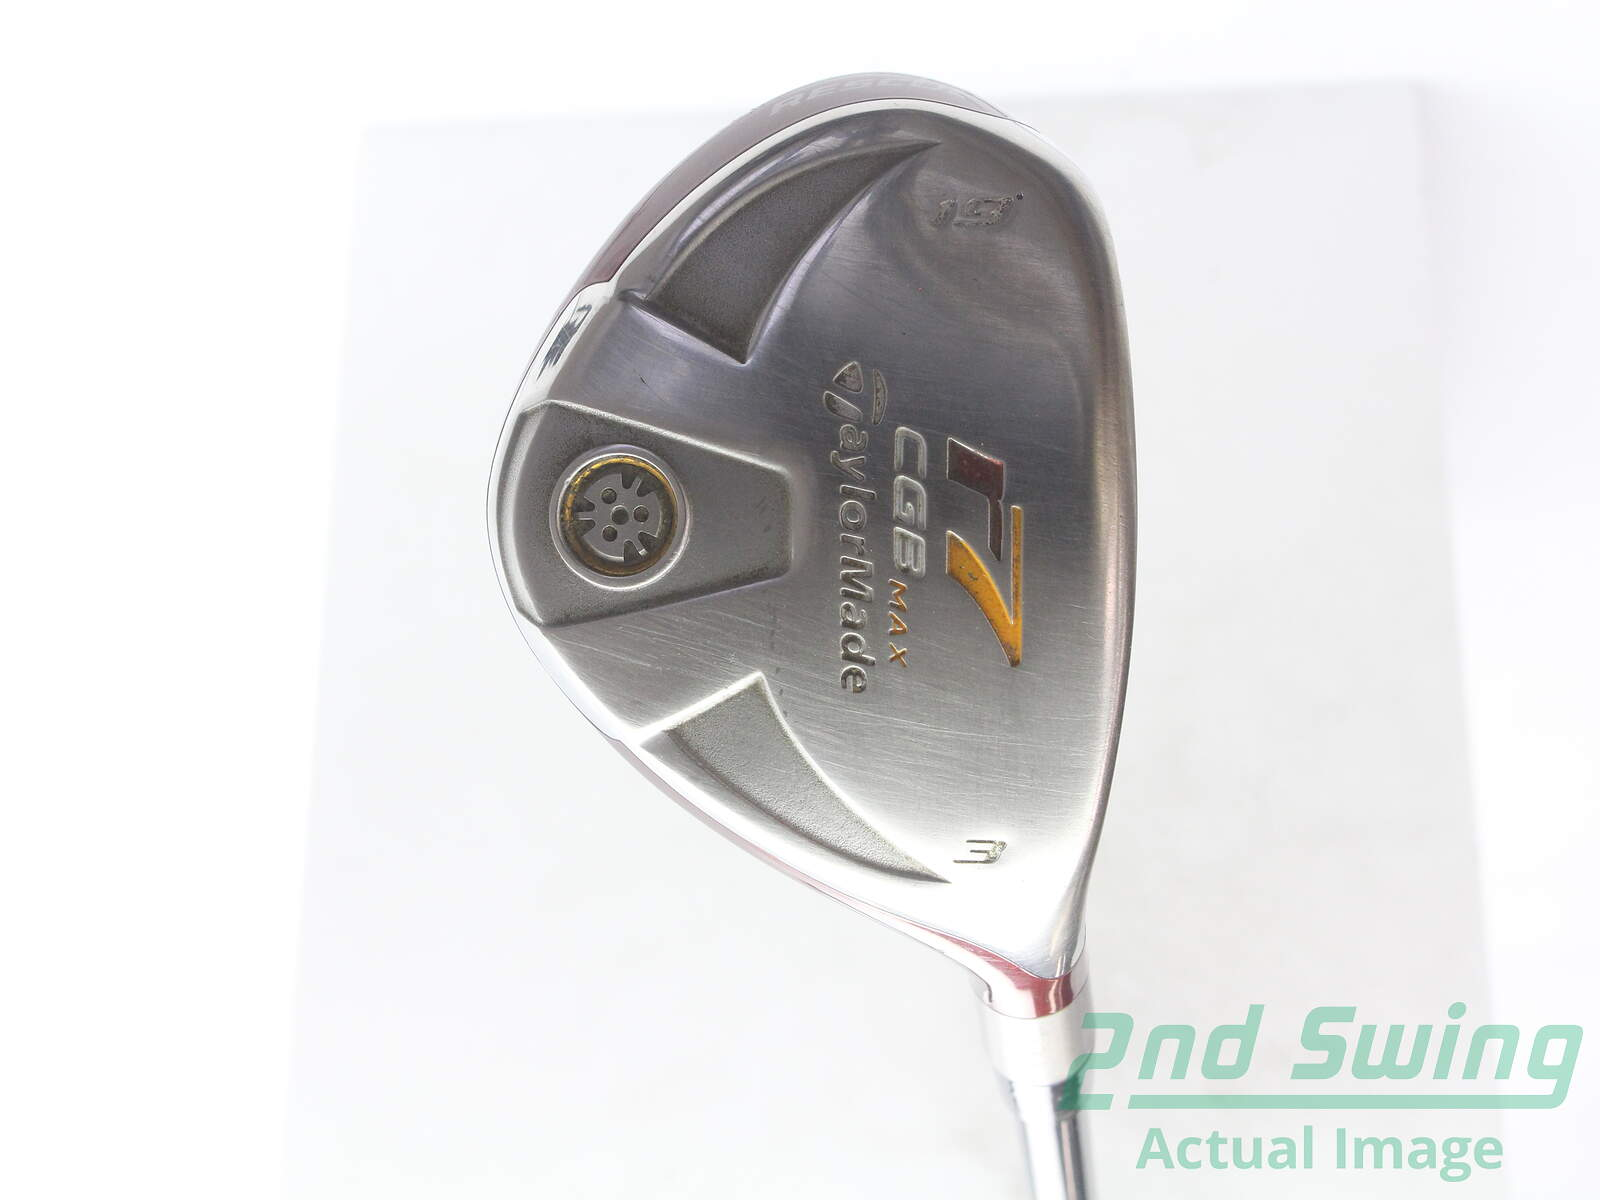 Taylormade R7 Cgb Max Hybrid 3 19 Stock Graphite Shaft Regular Right Handed